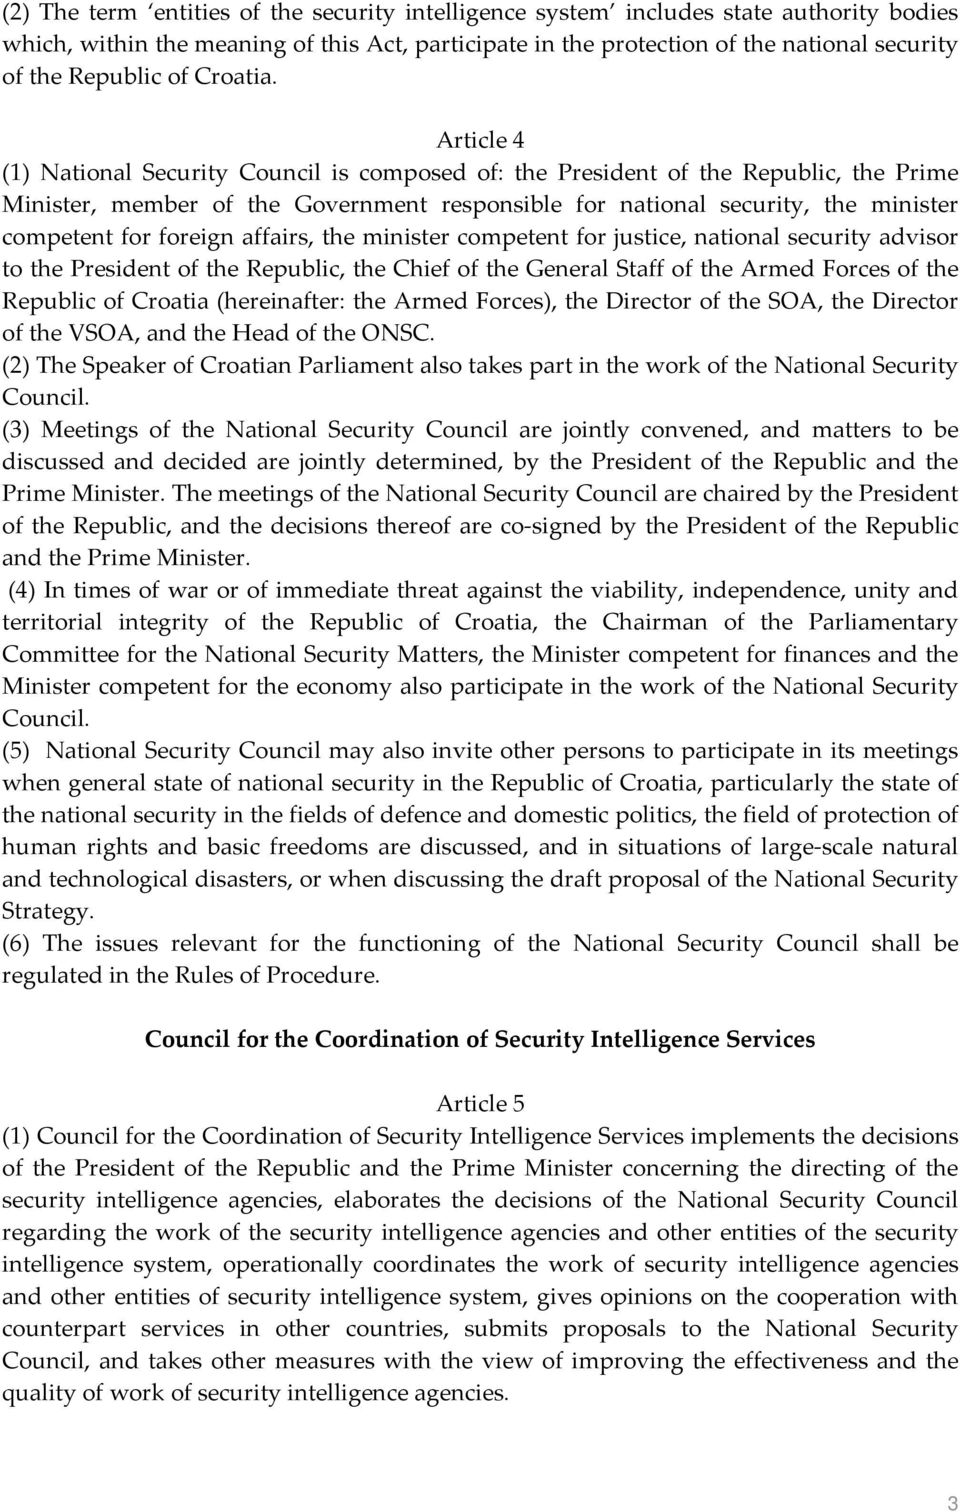 Article 4 (1) National Security Council is composed of: the President of the Republic, the Prime Minister, member of the Government responsible for national security, the minister competent for